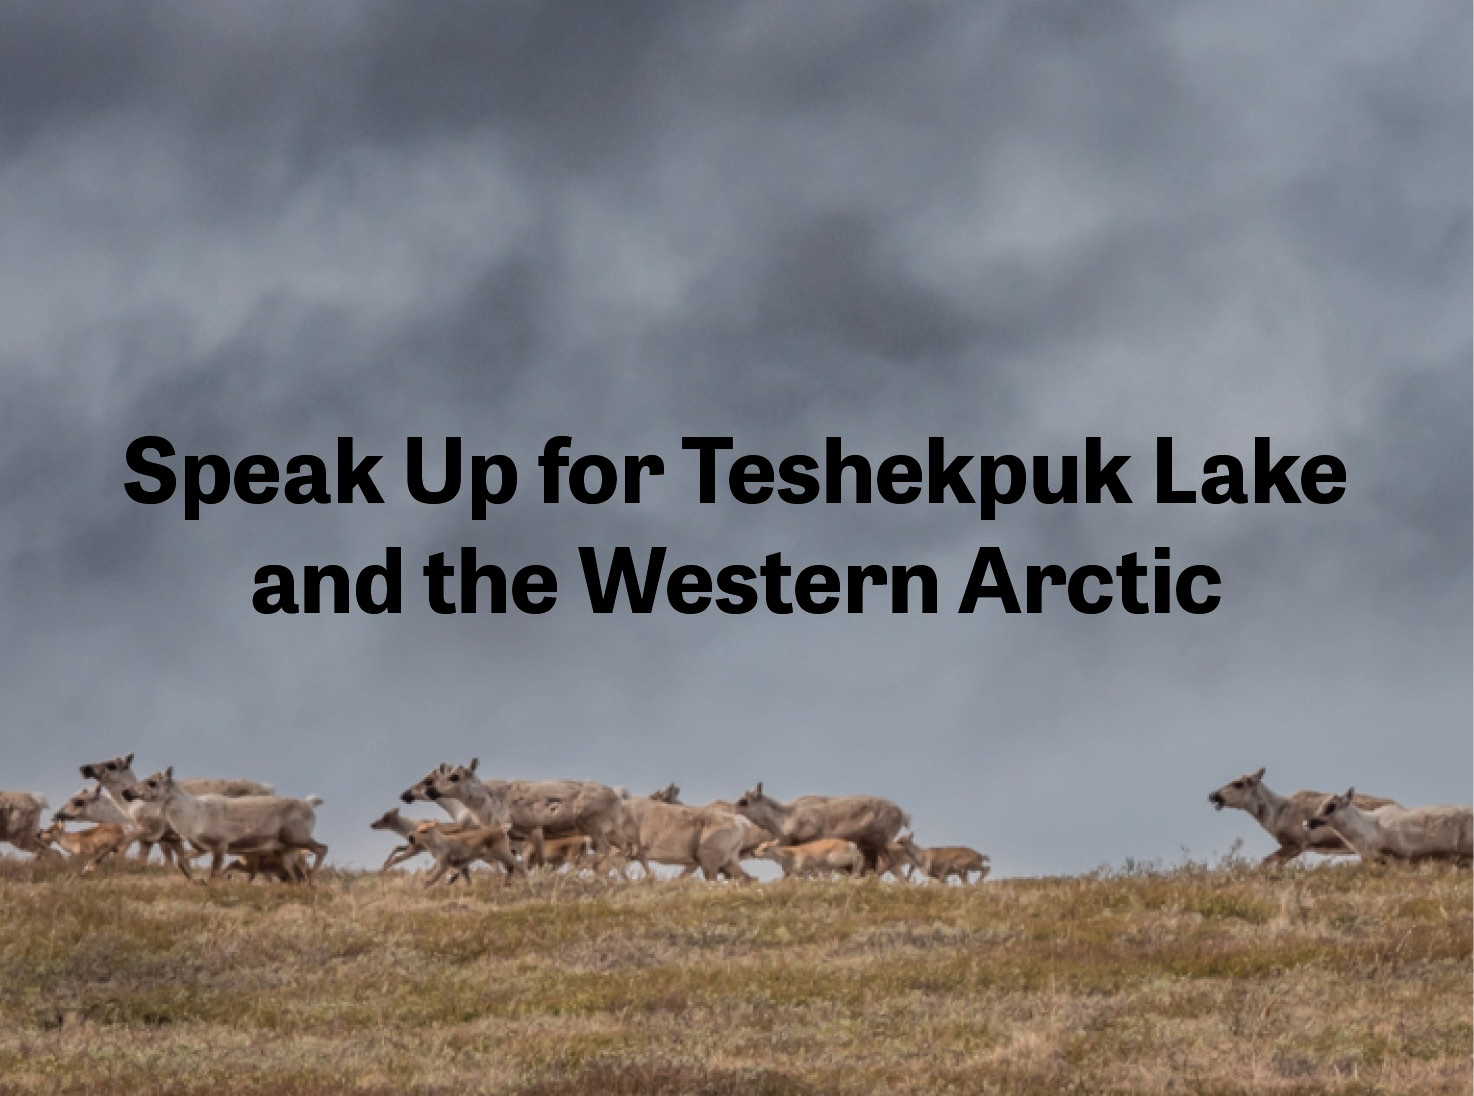 Caribou in the Teshekpuk Lake area of the NPRA or Western Arctic. Text says to speak up for the people and animals by telling BLM to expand protections in the NPRA